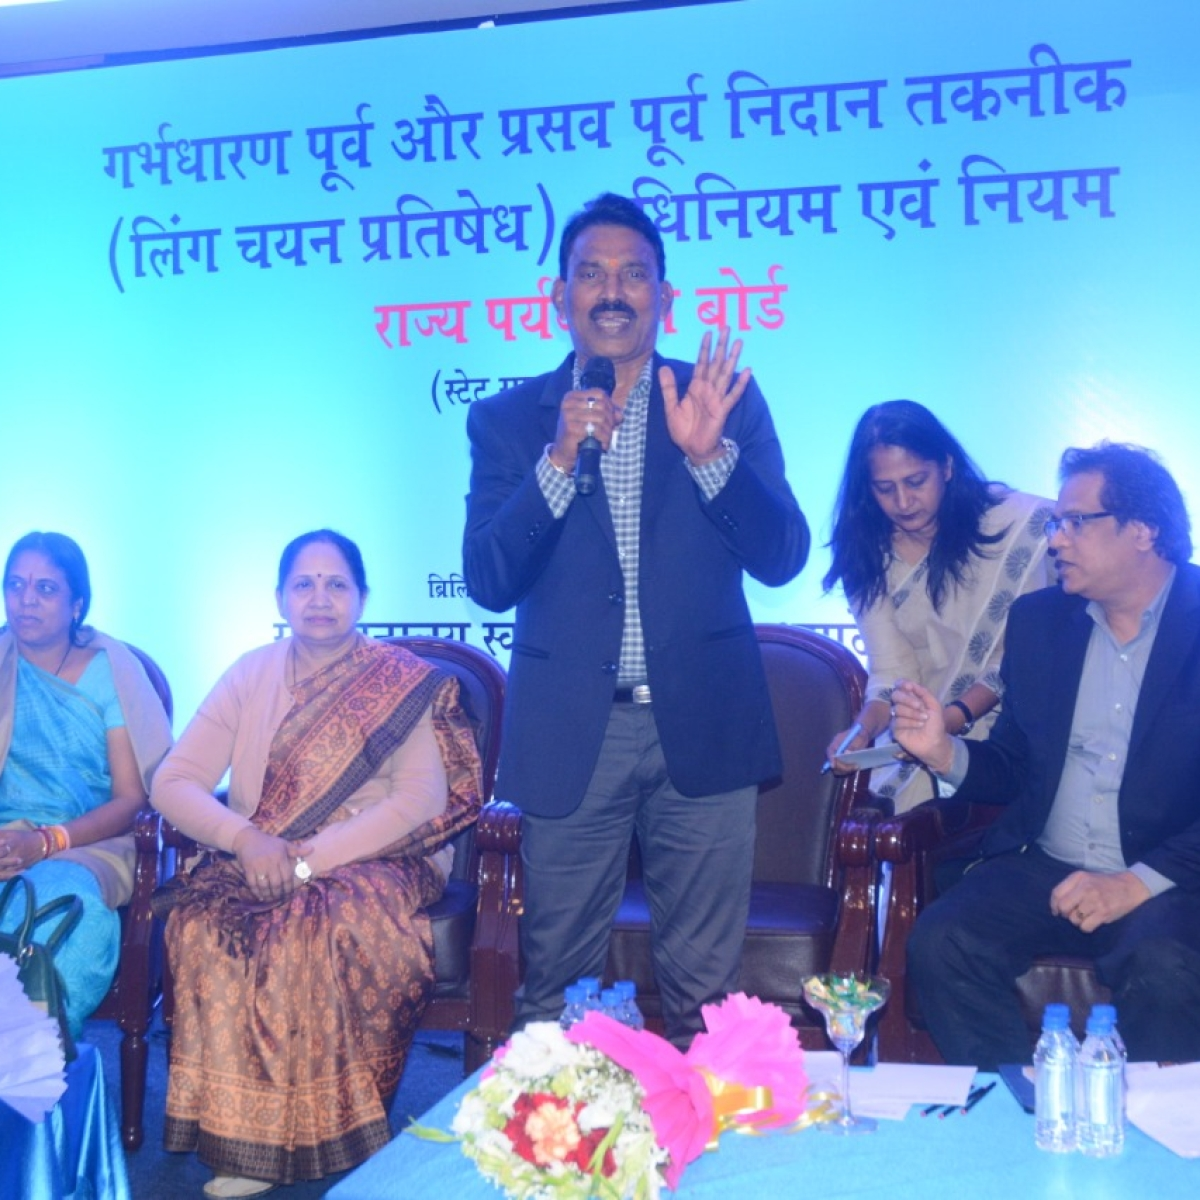 Let's work to make Indore best in sex ratio: MP minister Tulsi Silawat